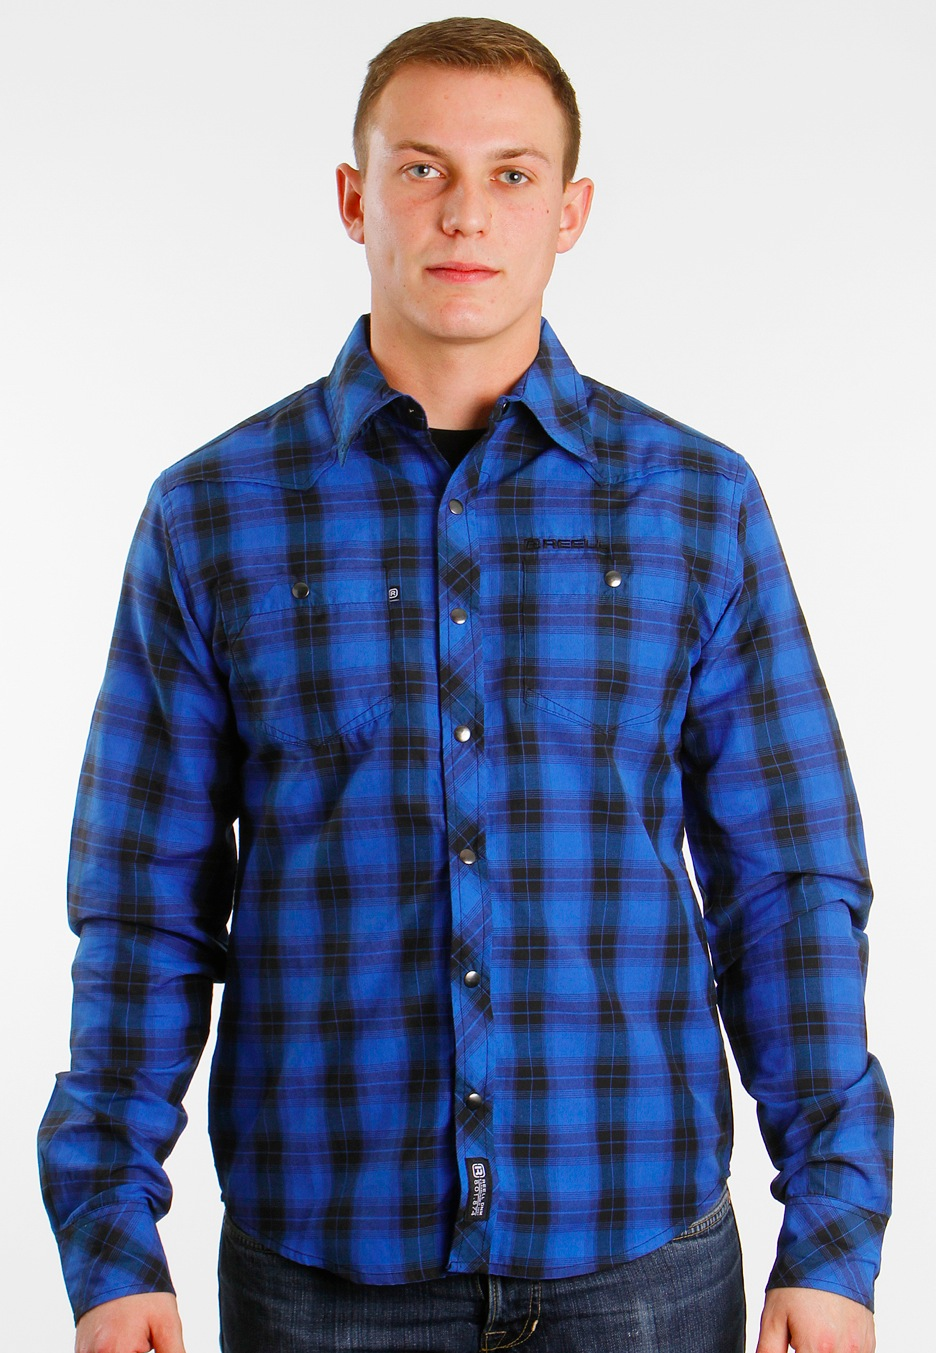 REELL - Natural 2 Blue/Black Check - Shirt - Impericon.com Worldwide